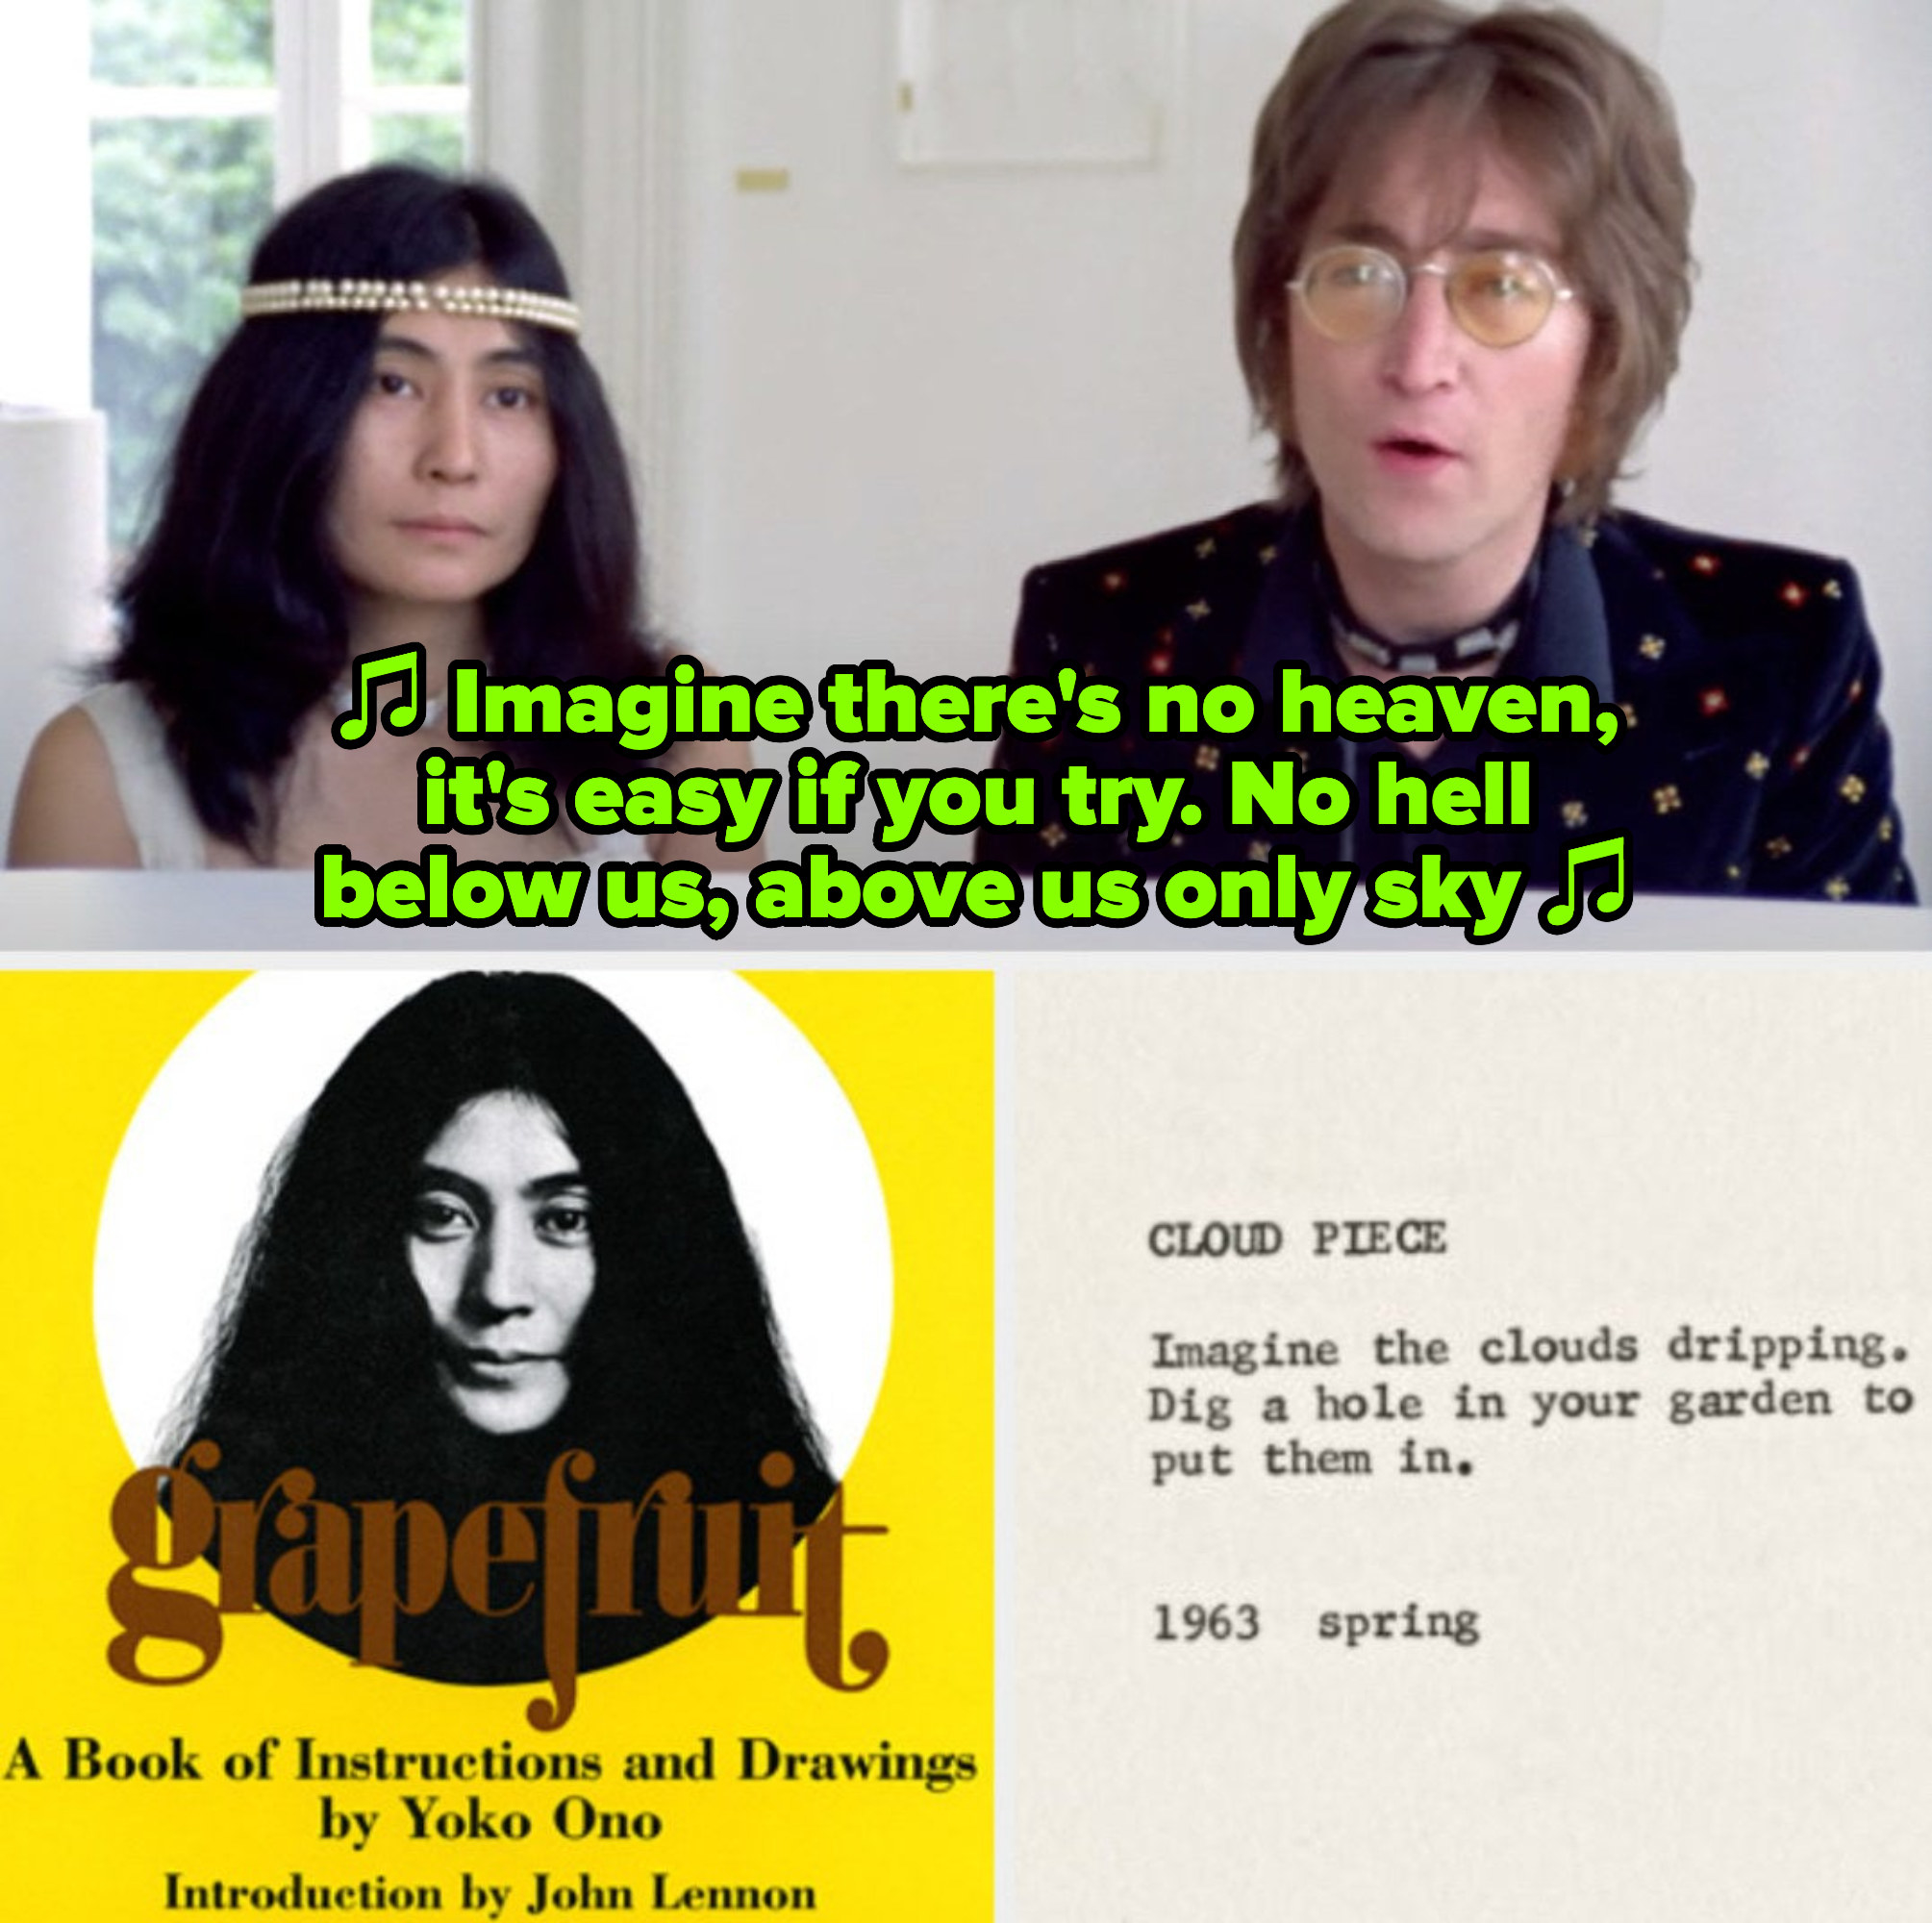 """Lennon and Ono in the """"Imagine"""" music video from 1971; the cover of Ono's poetry book """"Grapefruit;"""" an excerpt from Ono's poem """"Cloud Piece"""" that reads: """"Imagine the clouds dripping. Dig a hole in your garden to put them in"""""""